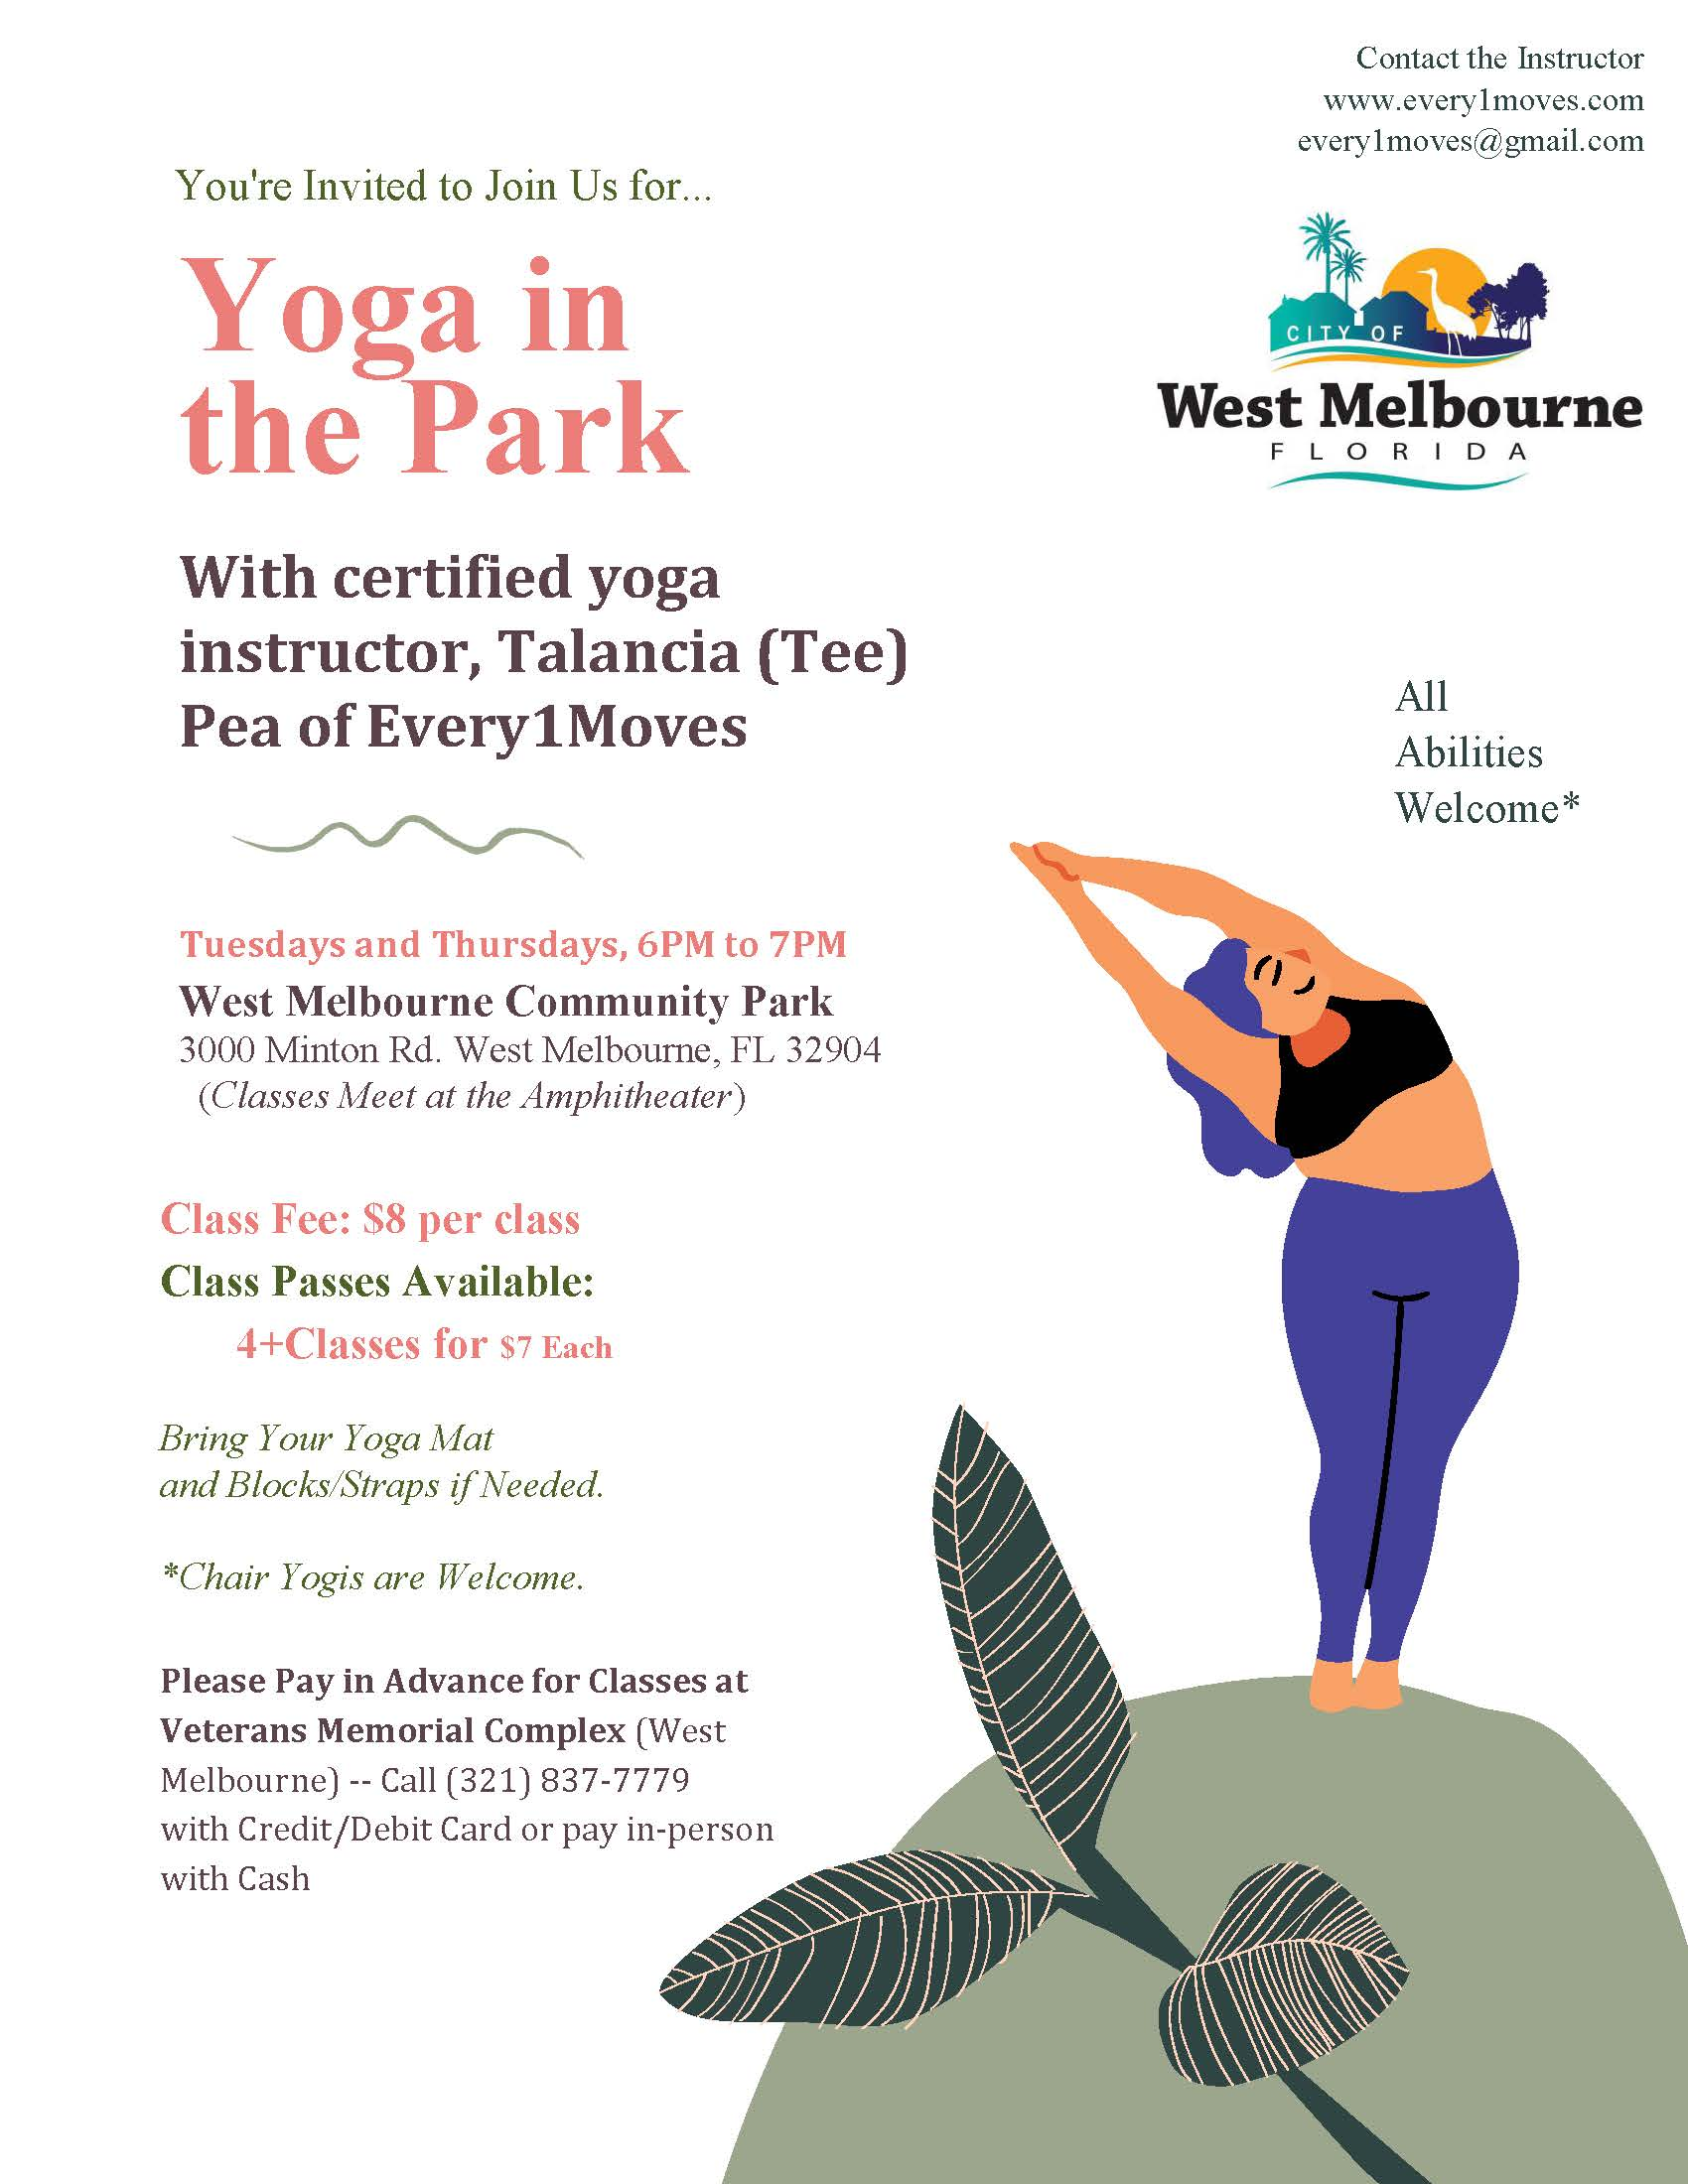 Yoga in the Park Flyer 2021